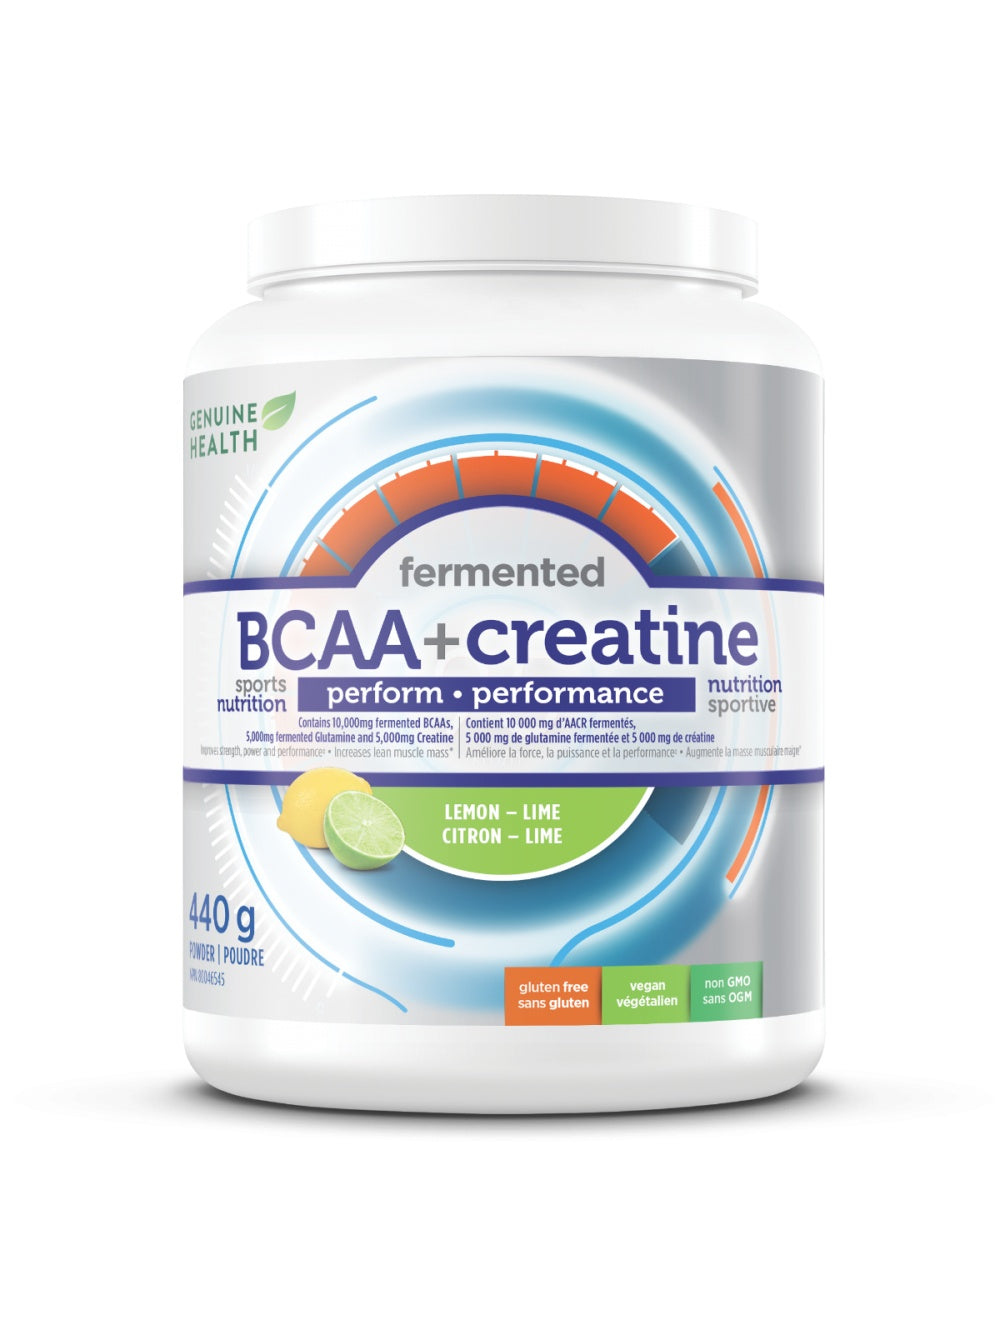 Supplements & Vitamins - Genuine Health - BCAA & Creatine, 440g